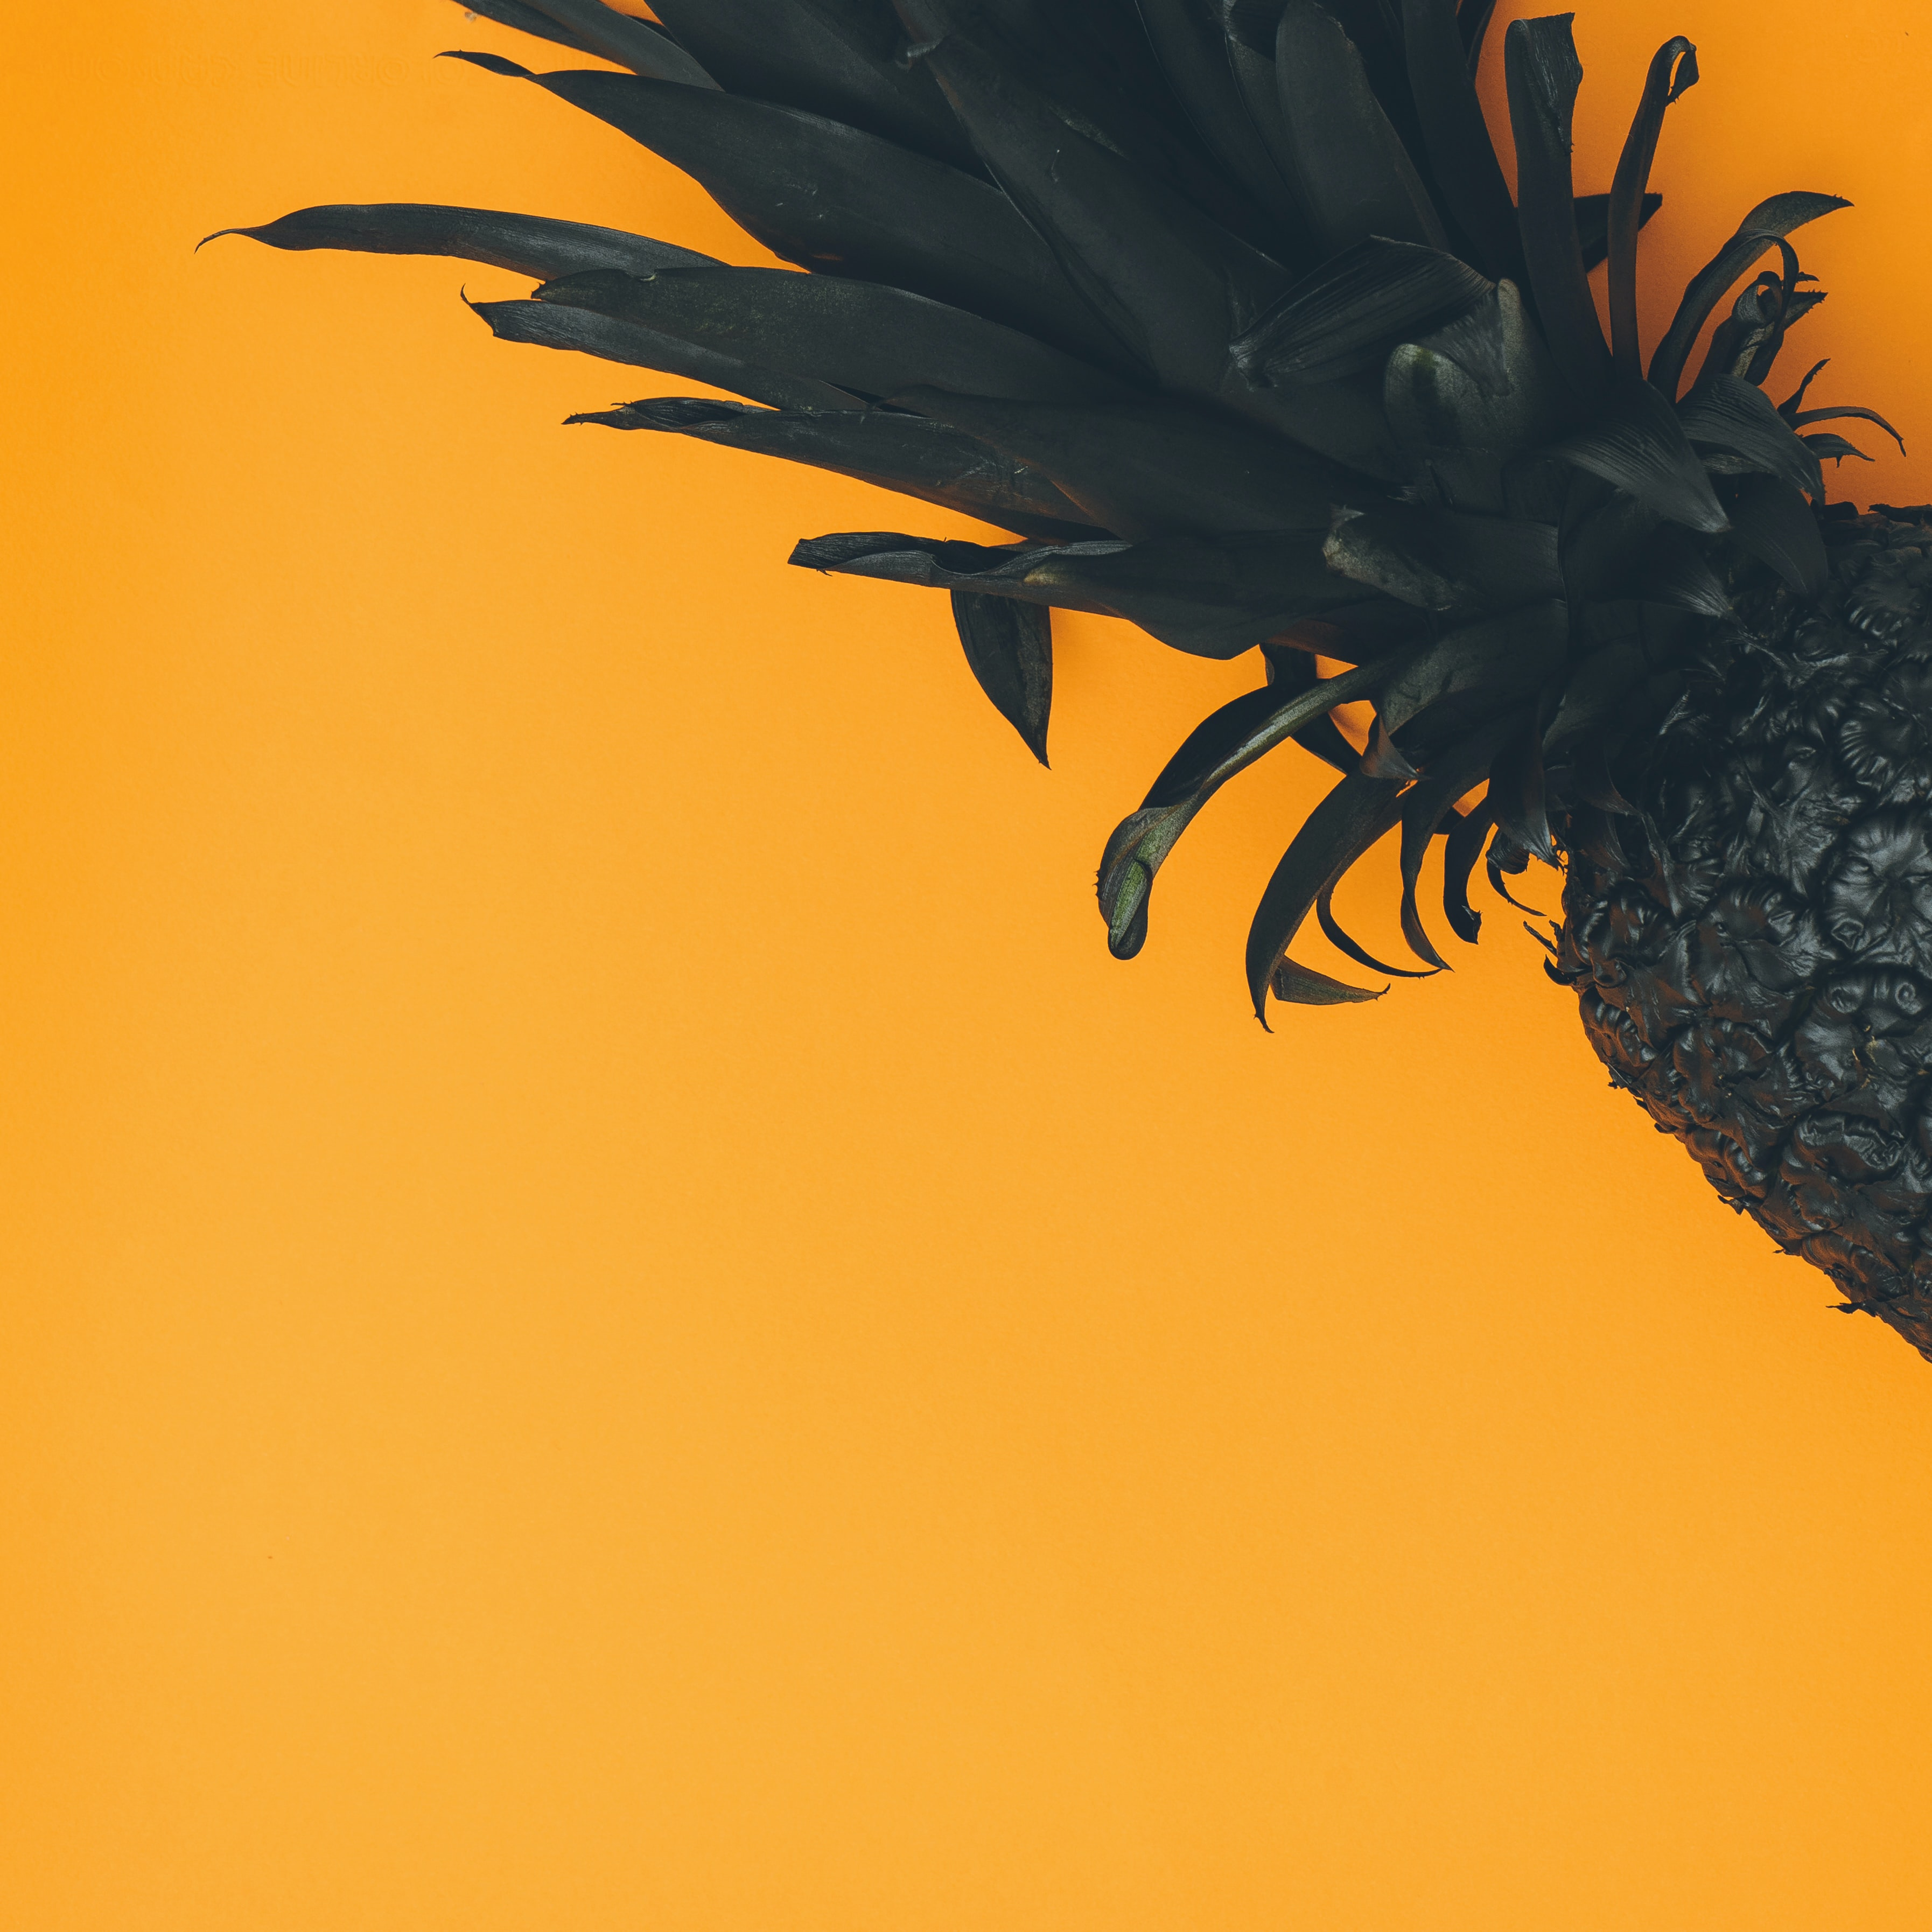 pineapple on orange background